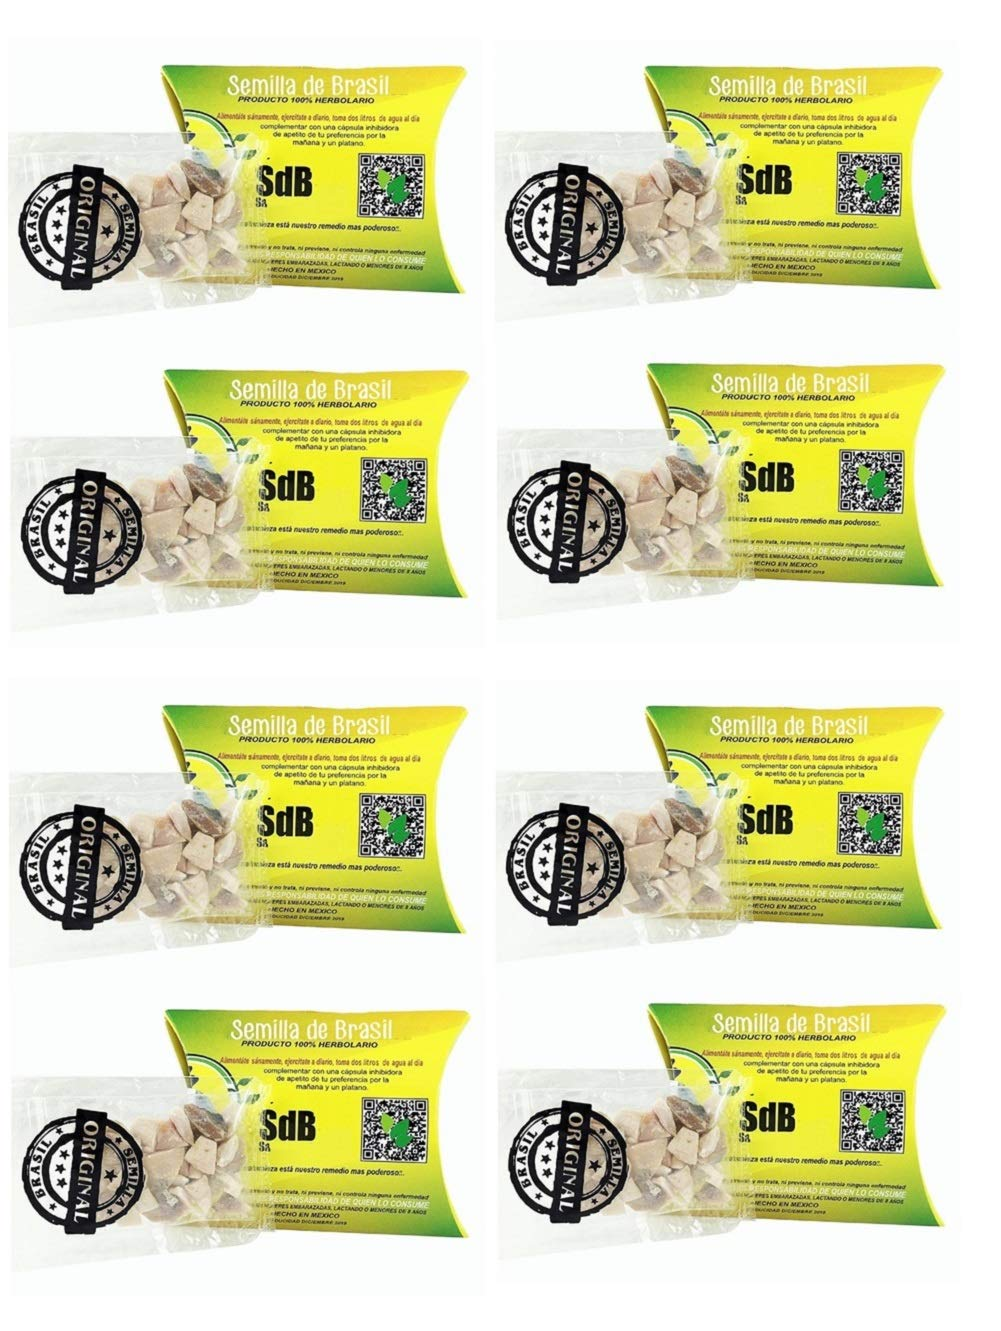 8 Pack Semilla de Brasil Seed 100% Original Authentic Natural 240 Day Supply